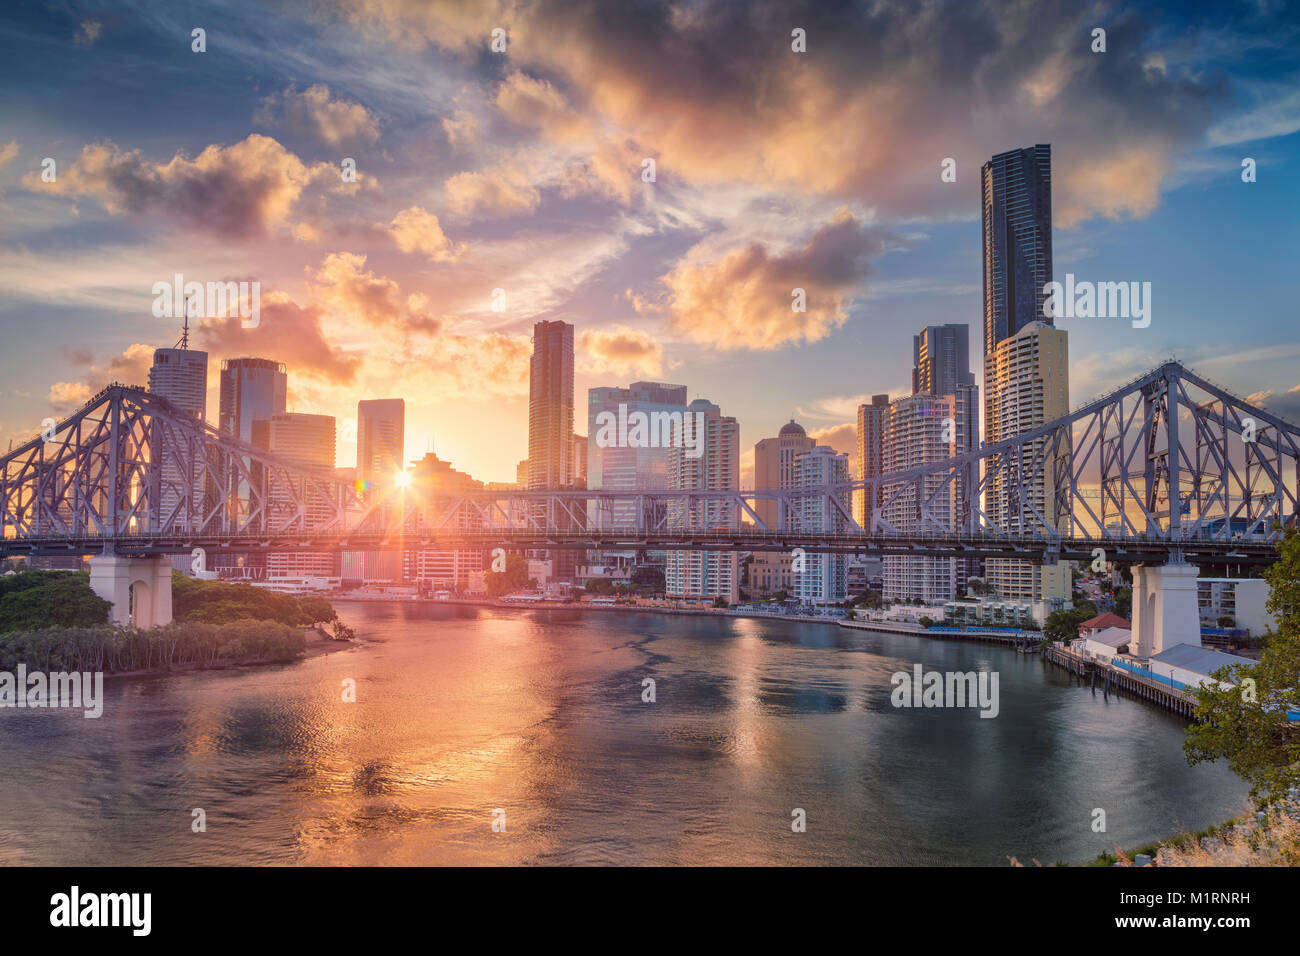 Brisbane. Cityscape image of Brisbane skyline, Australia with Story Bridge during dramatic sunset. - Stock Image